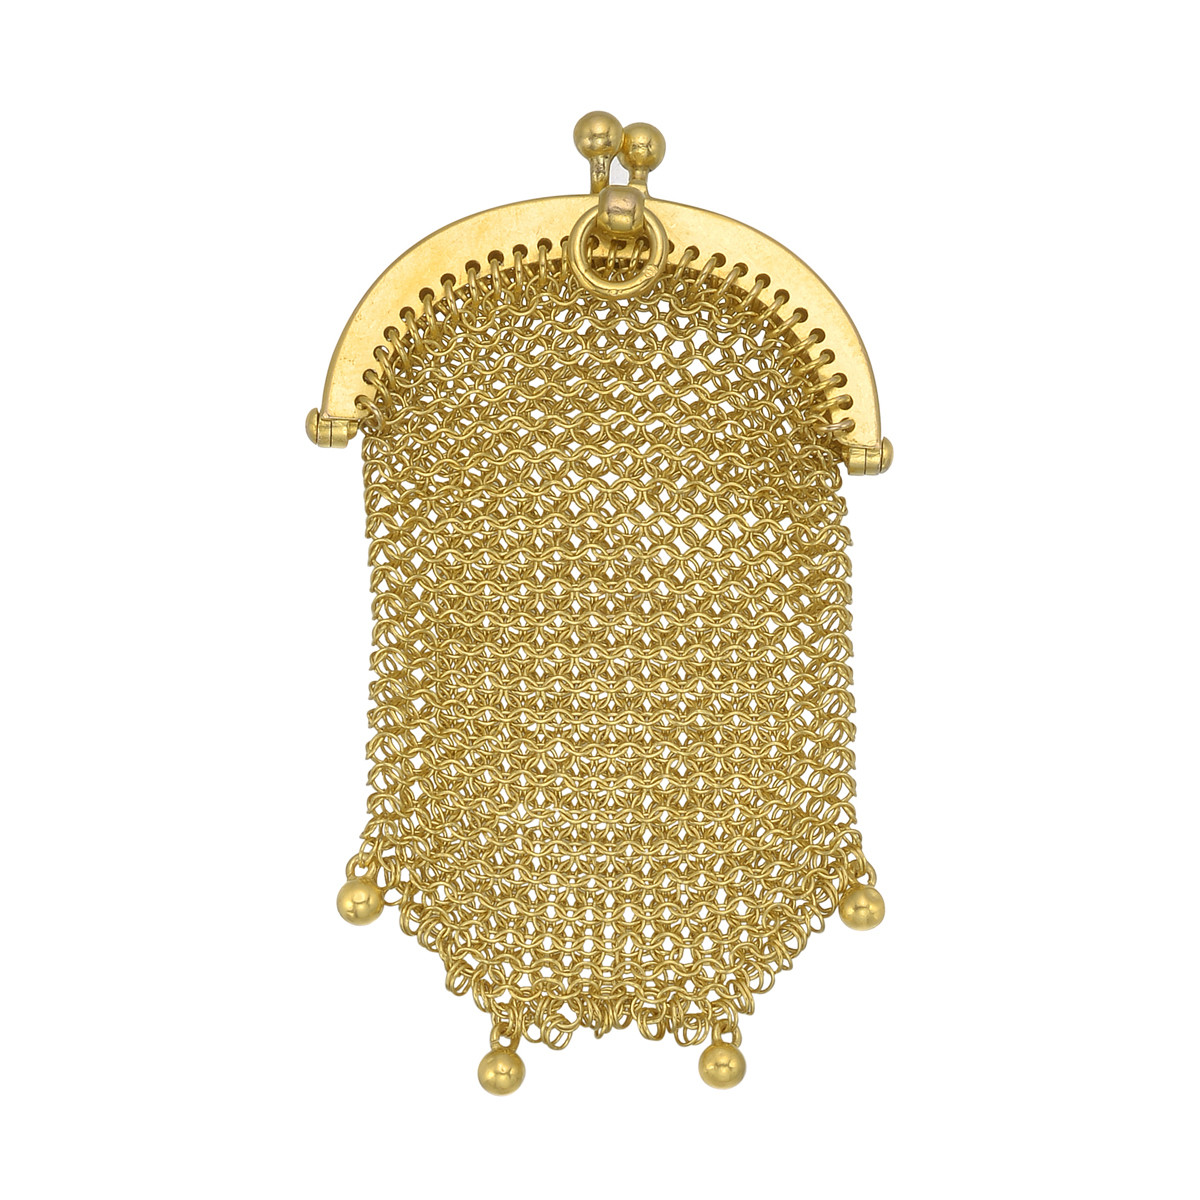 French 18k Yellow Gold Mesh Purse Pendant